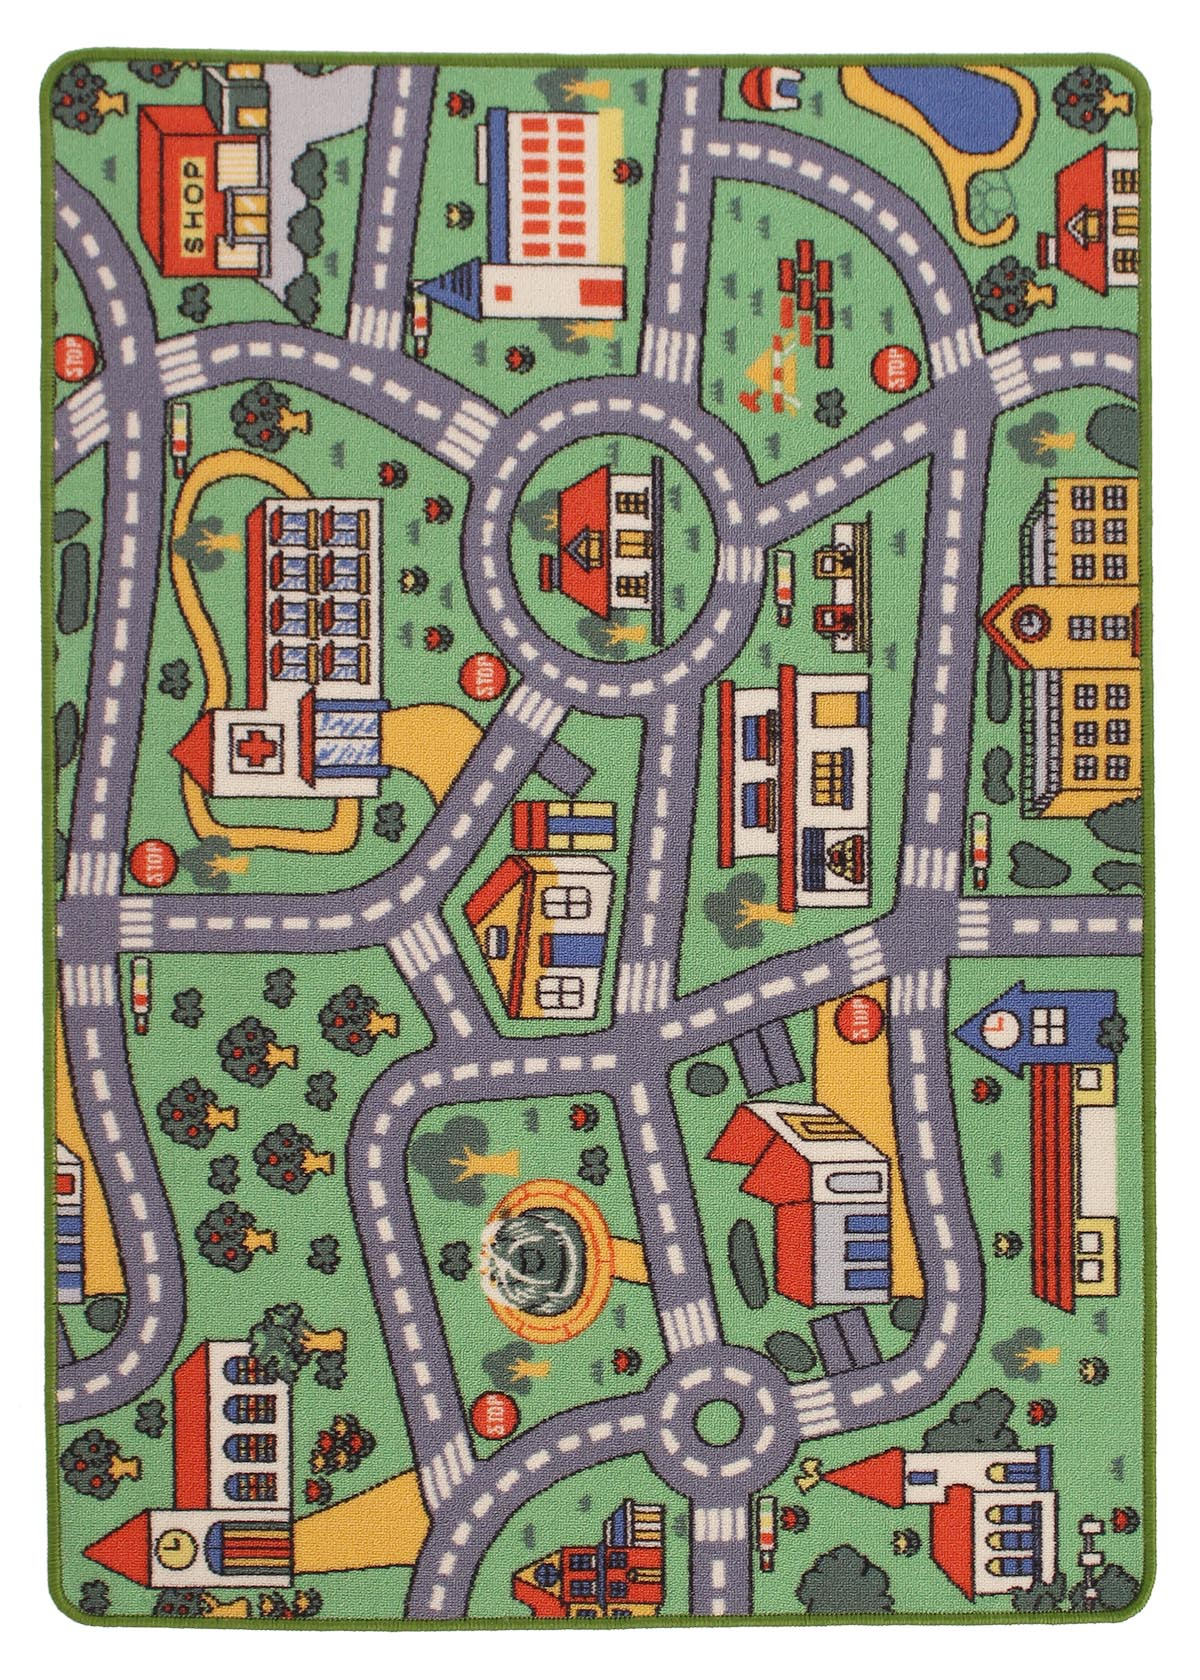 Roads Kids Playmat Rug Rugspot